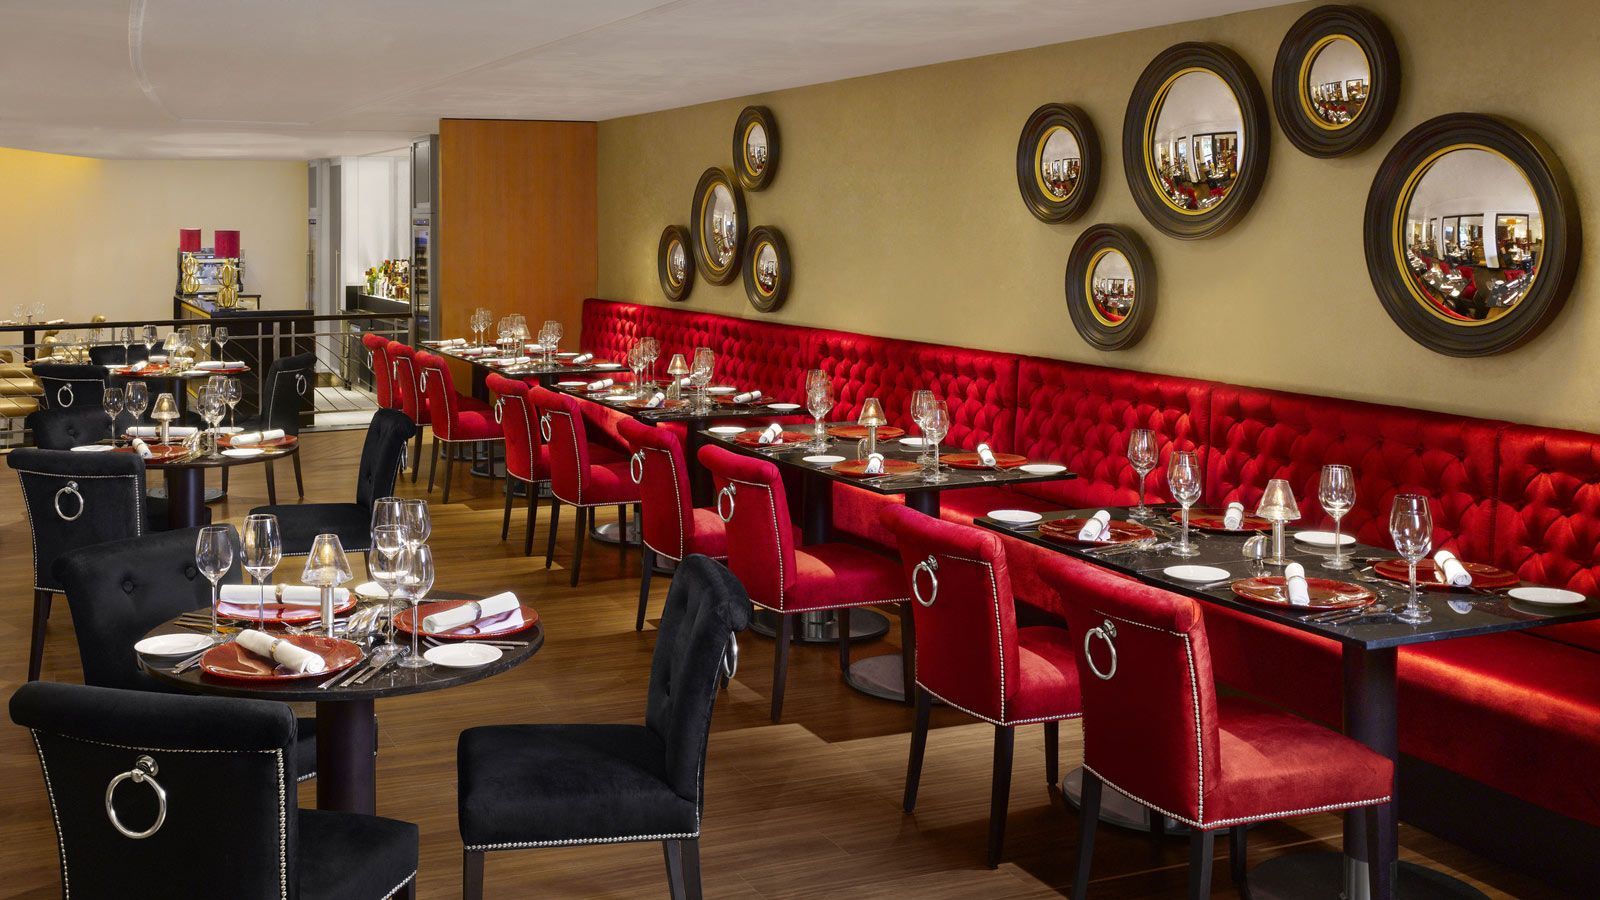 The madhu s restaurant is a long running traditional